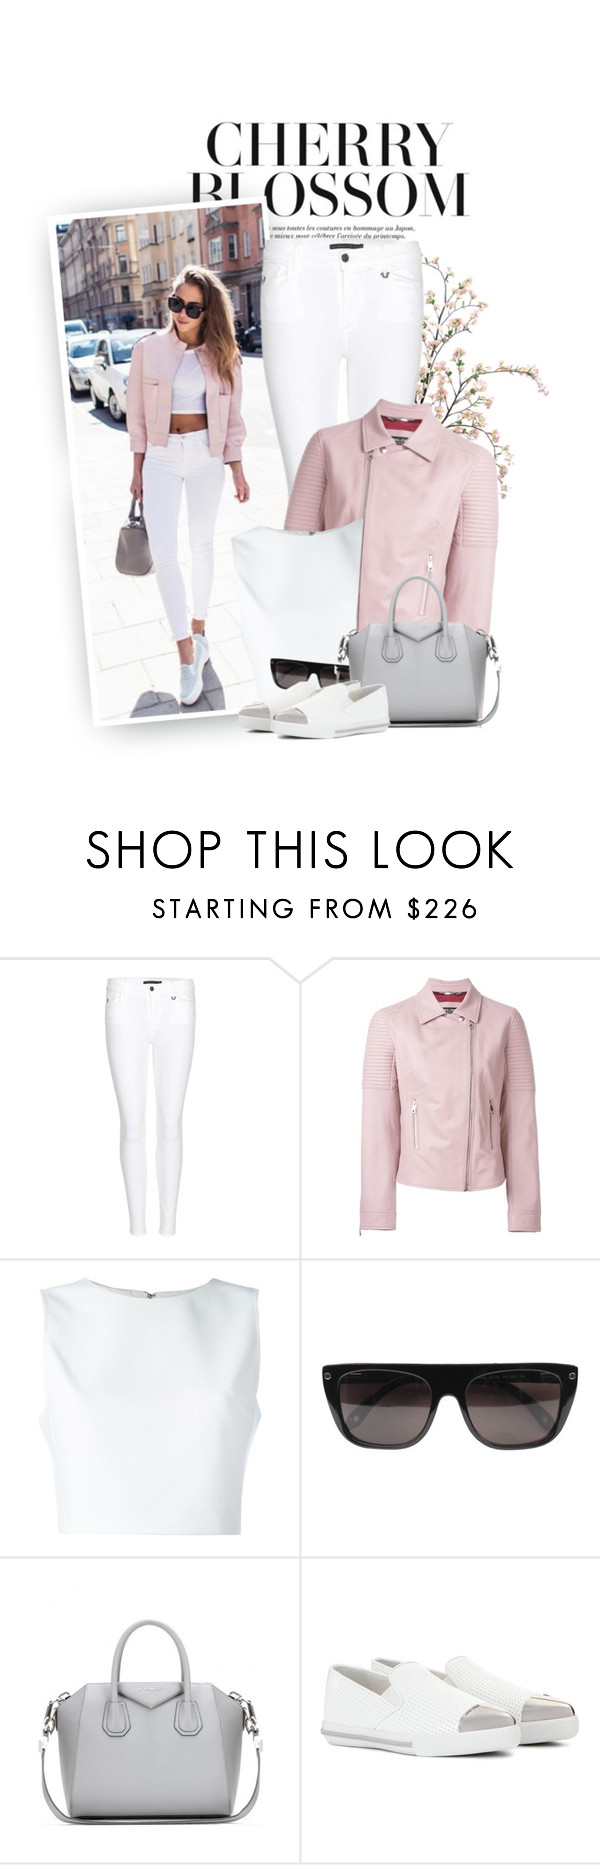 """""""Cherry Blossom Street Style"""" by hollowpoint-smile ❤ liked on Polyvore featuring True Religion, Dolce&Gabbana, Alice + Olivia, Givenchy and Miu Miu"""